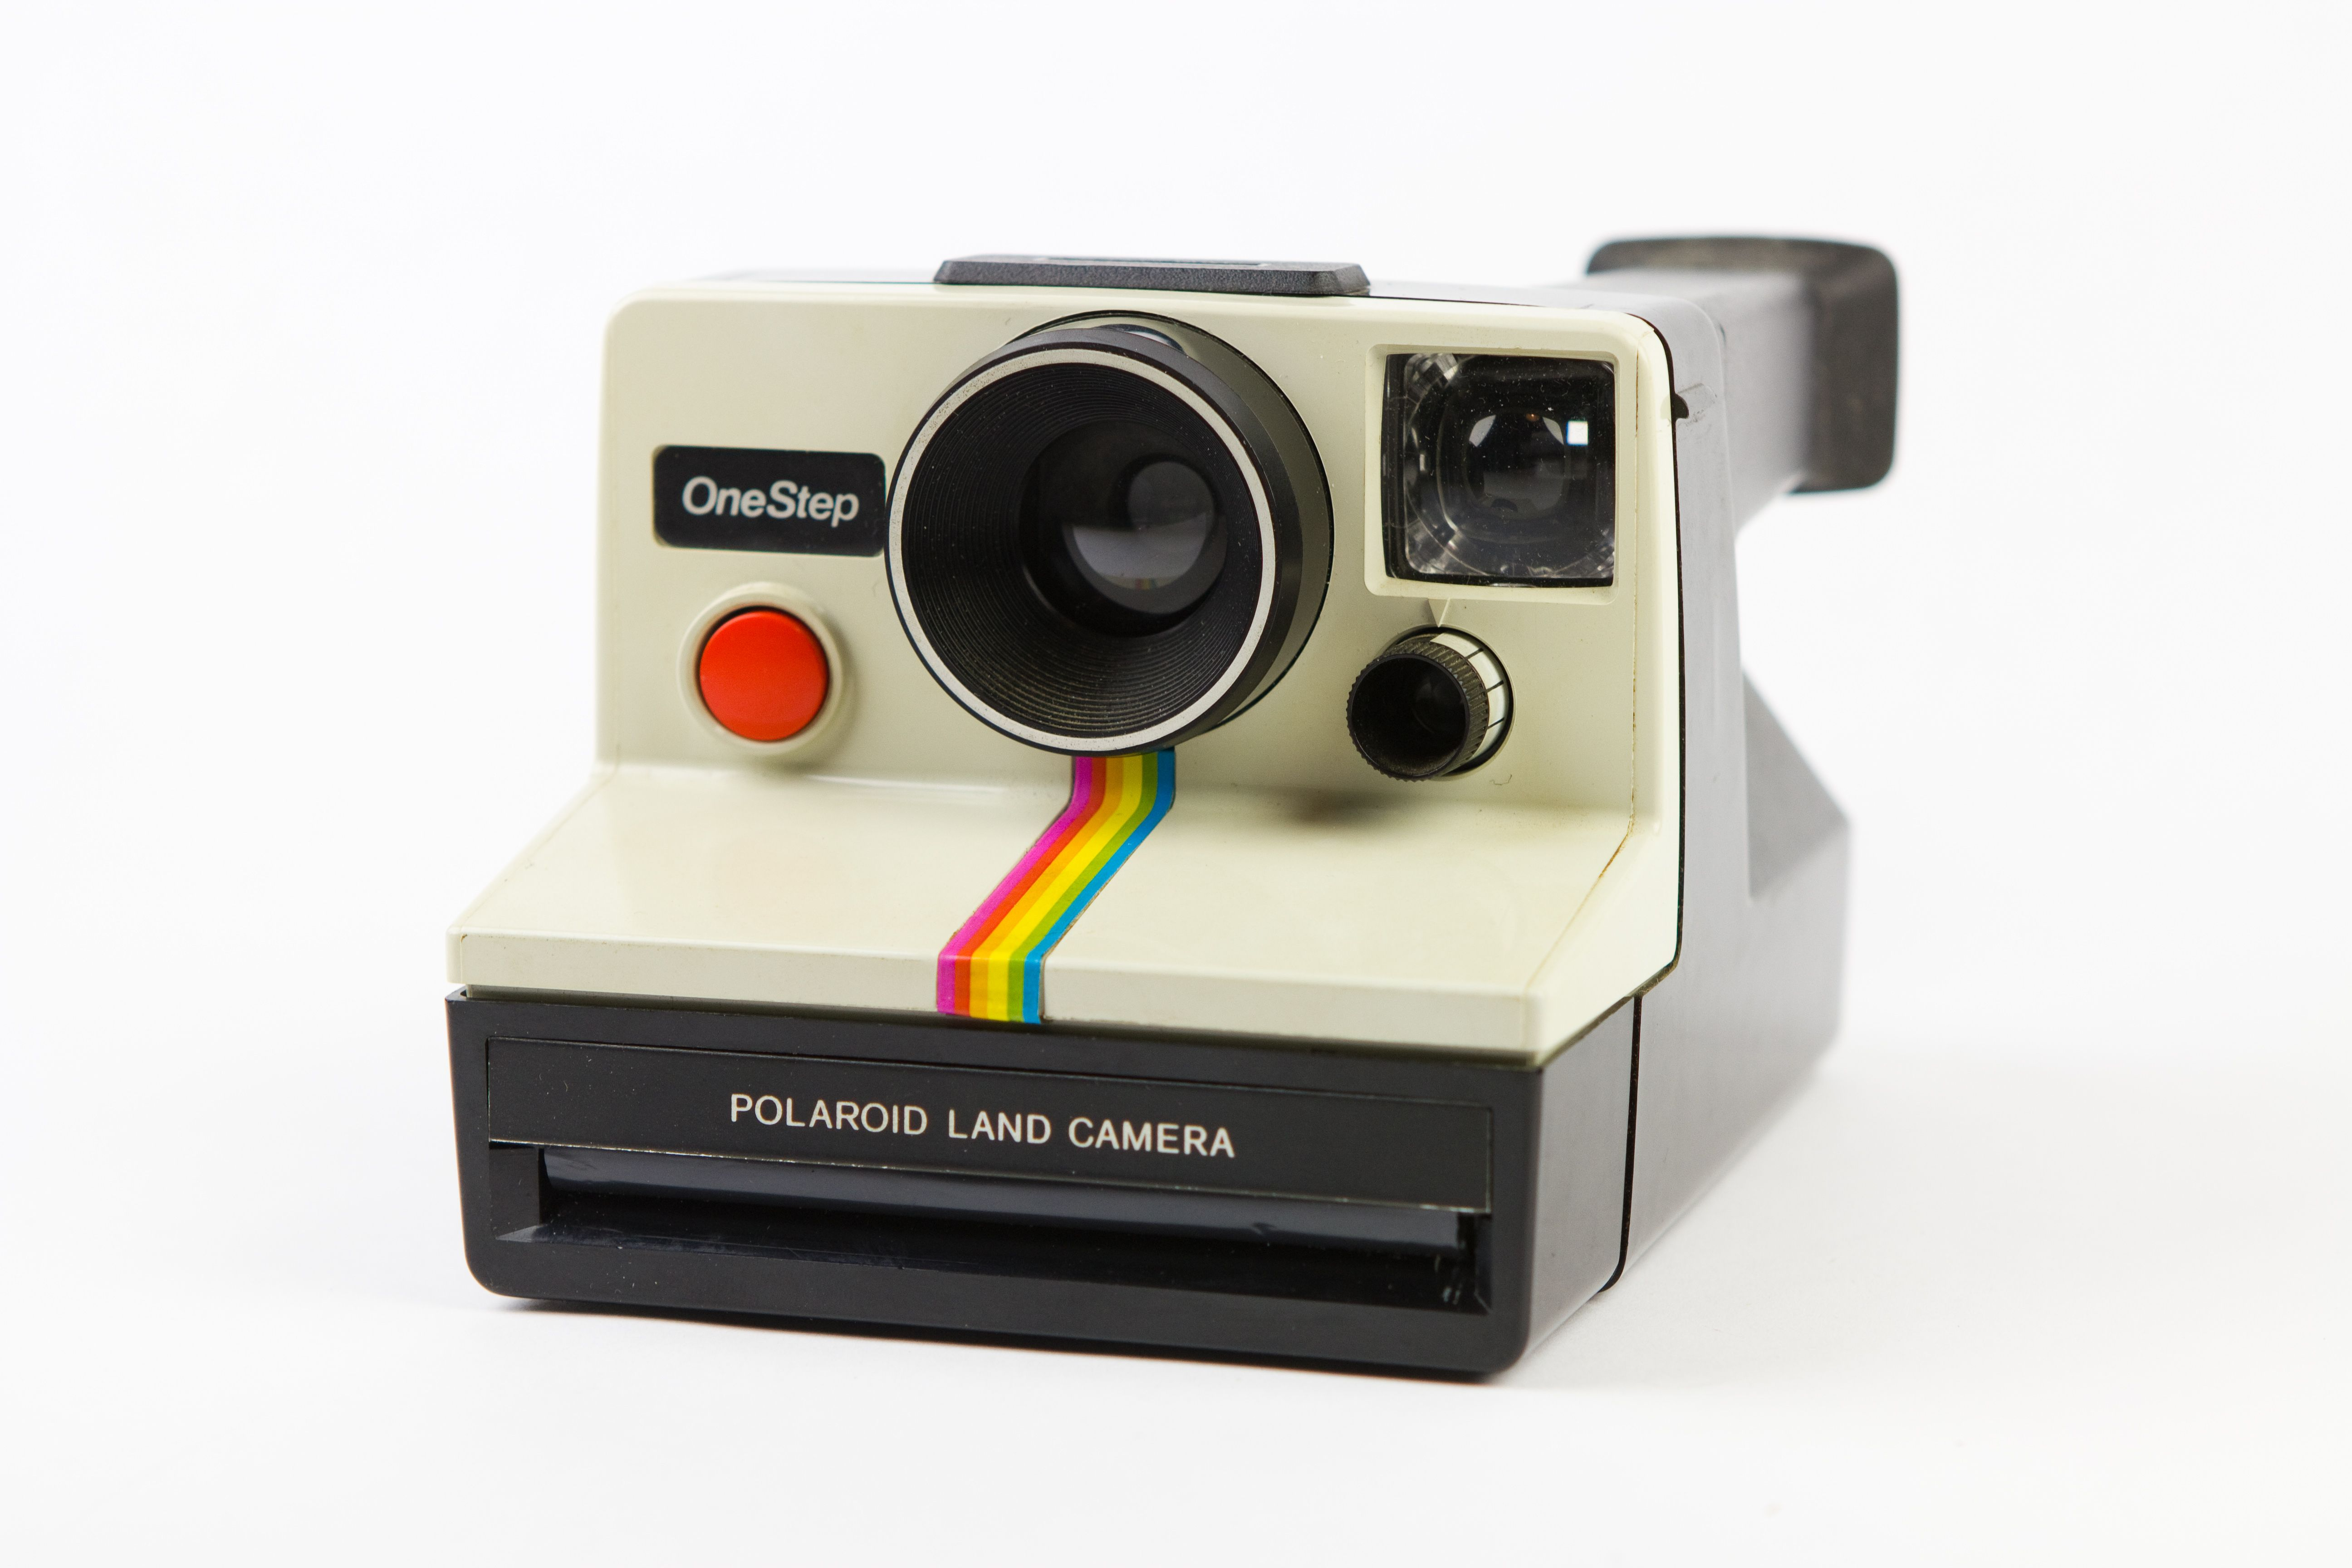 Polaroid Camera Urban Outfitters Uk : Related image tmd 126 week 1 polaroid movies polaroid camera